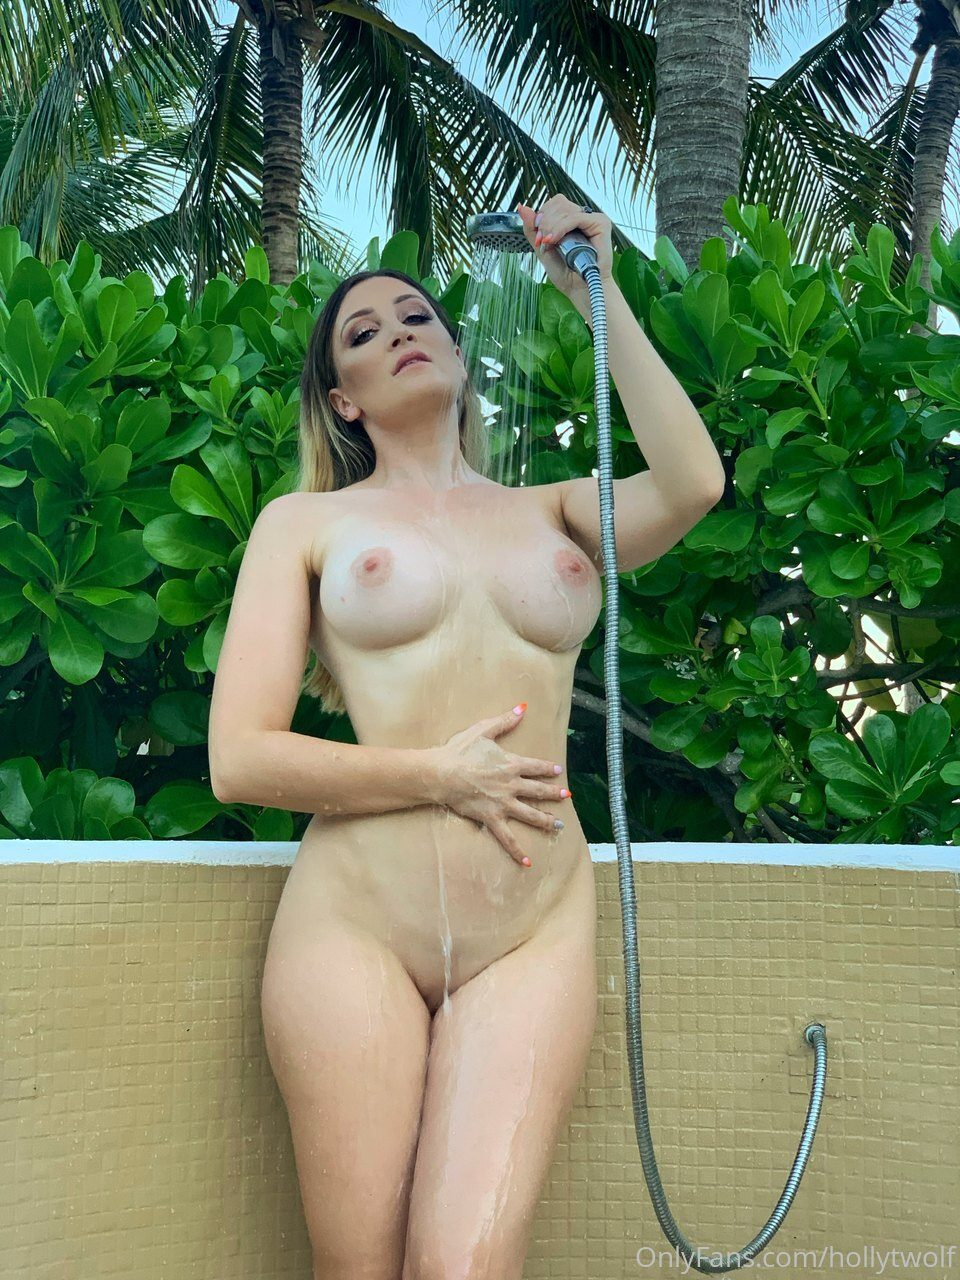 Holly wolf nude